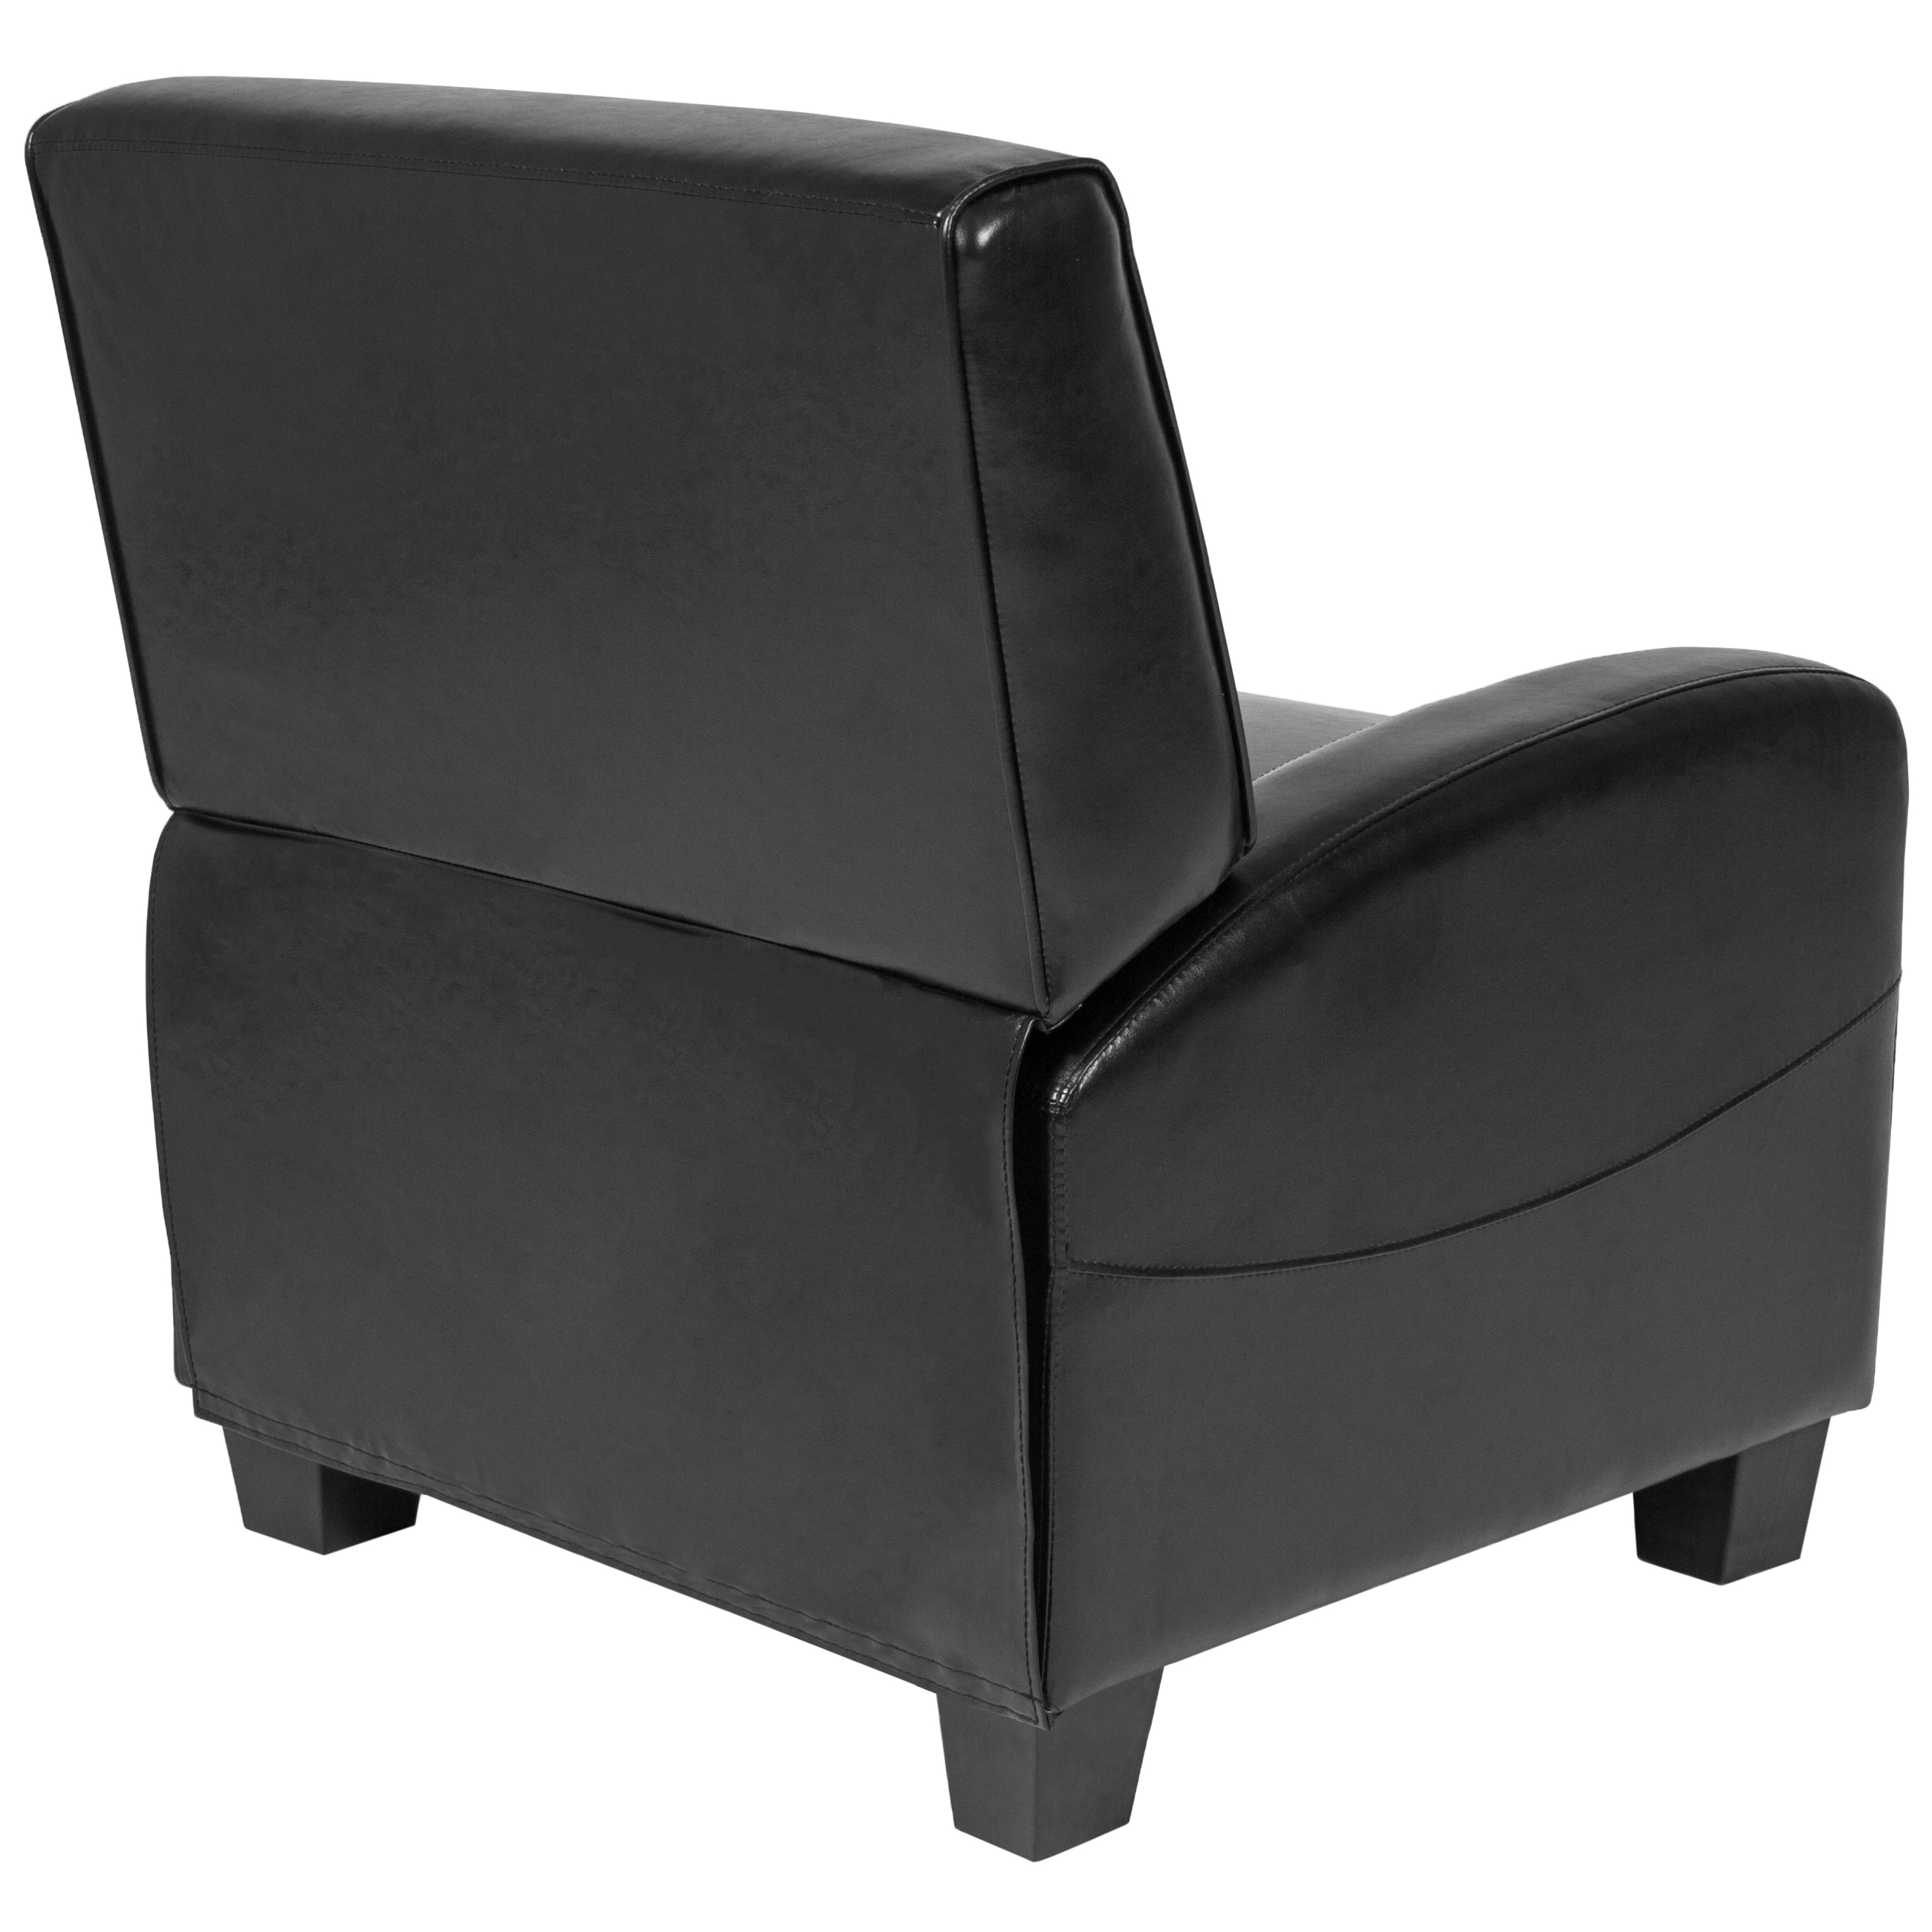 Best Choice Products Padded Upholstery Leather Home Theater Recliner Chair ( Black)  sc 1 st  Walmart & Recliners - Walmart.com islam-shia.org